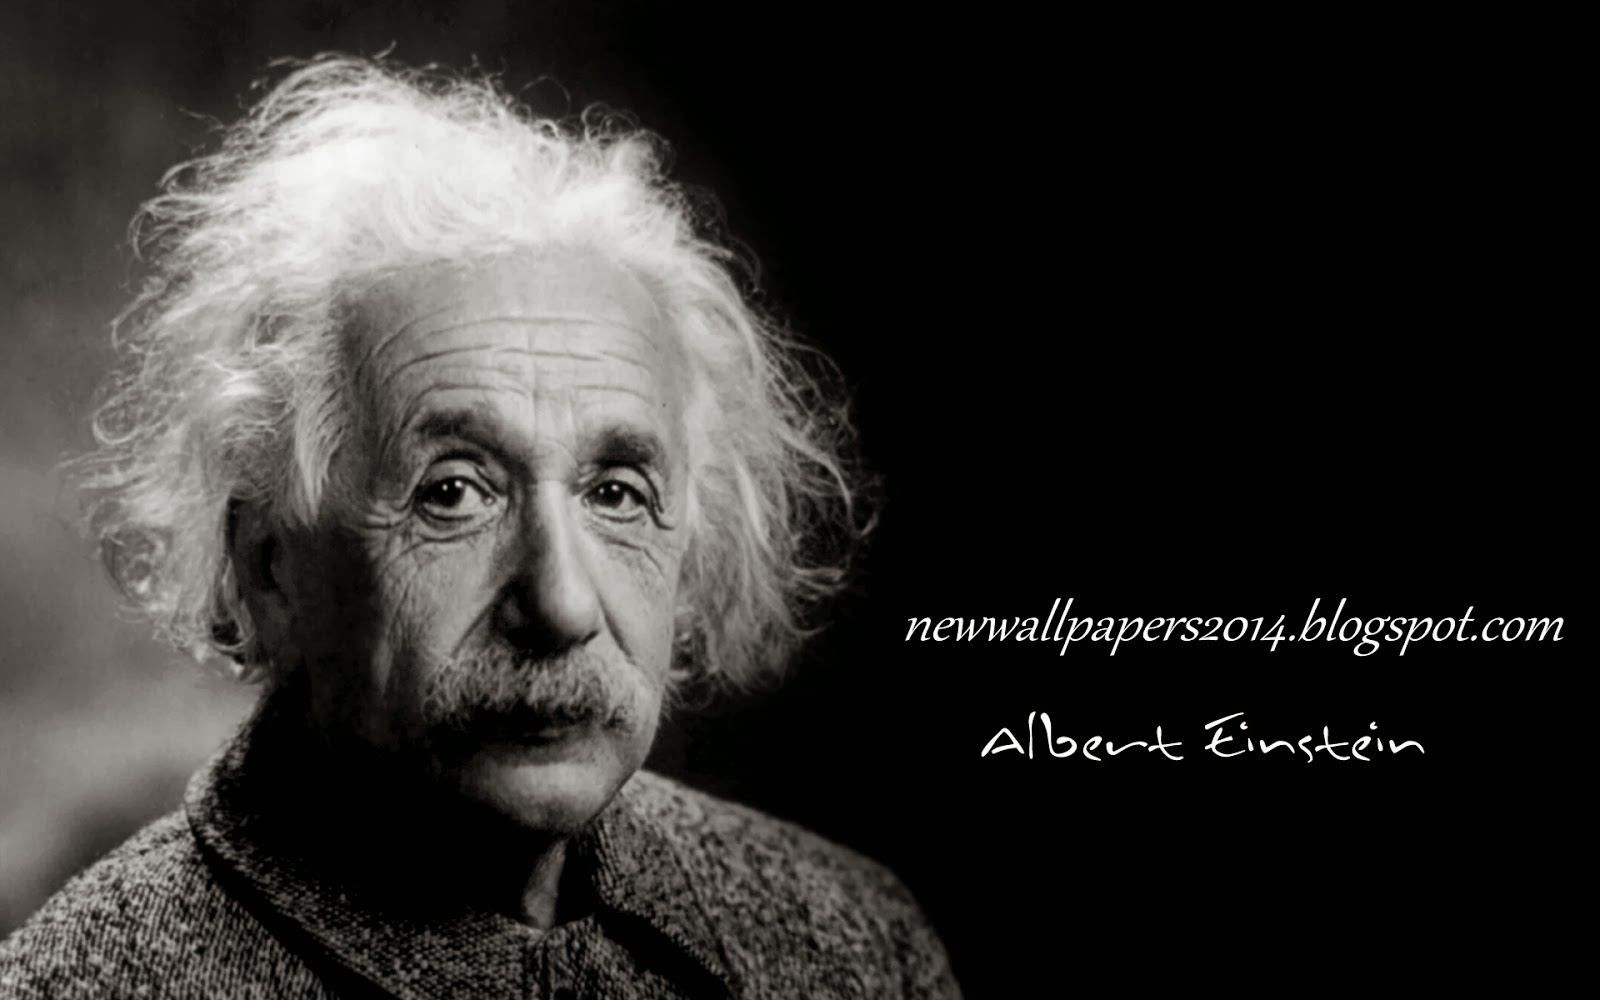 Albert einstein wallpapers albert einstein hd desktop - Albert einstein hd images ...